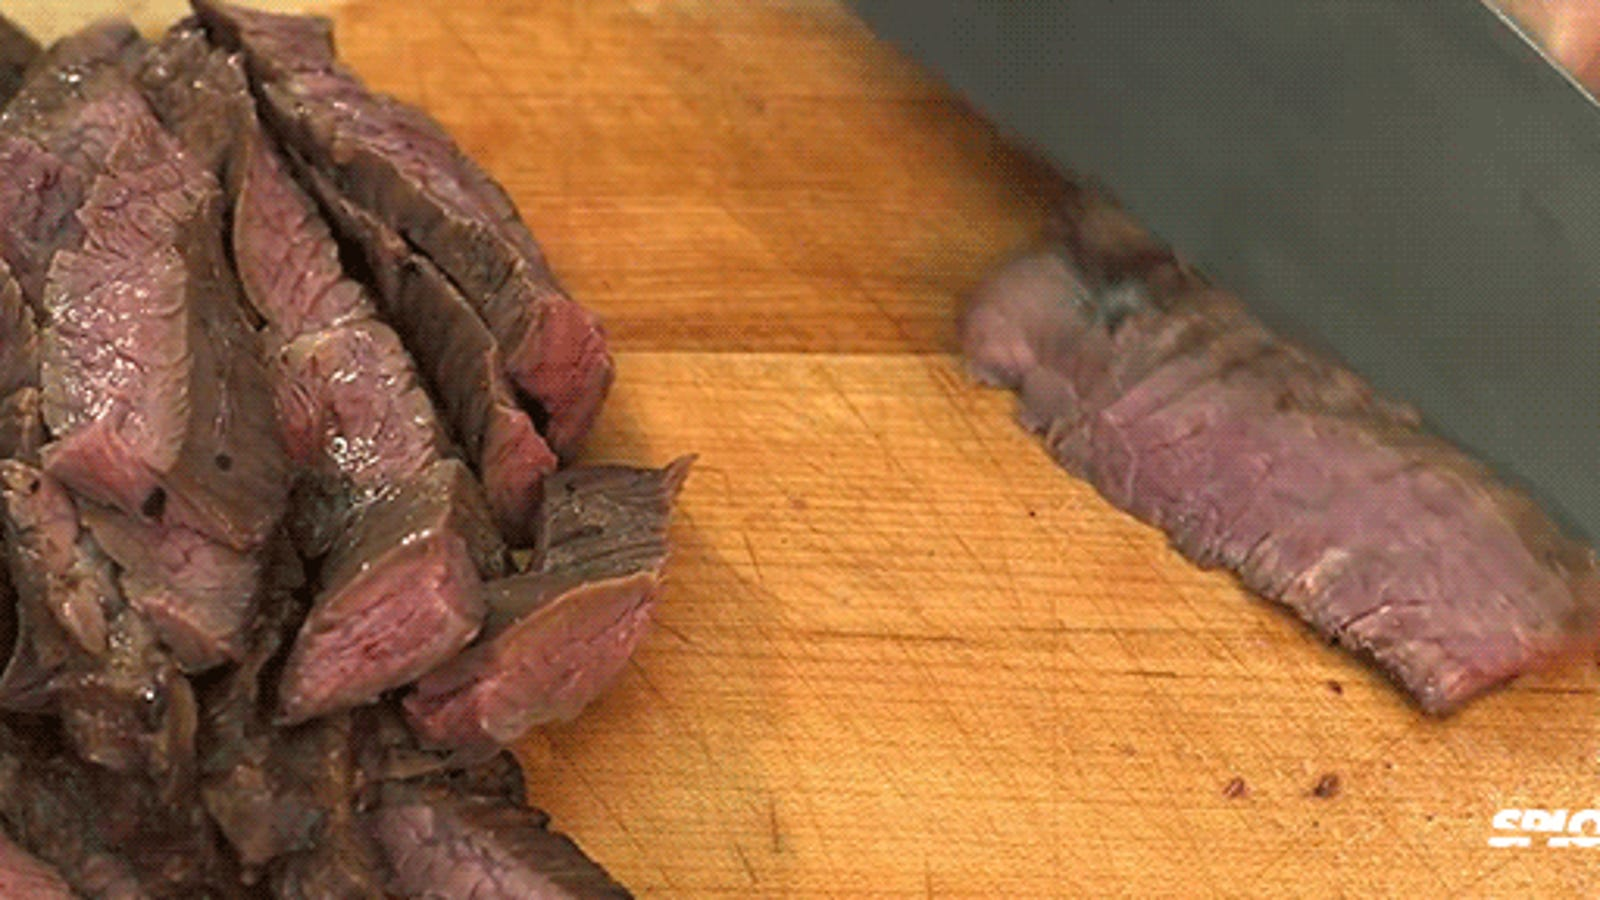 Two simple, fool-proof methods to cook a steak to delicious perfection